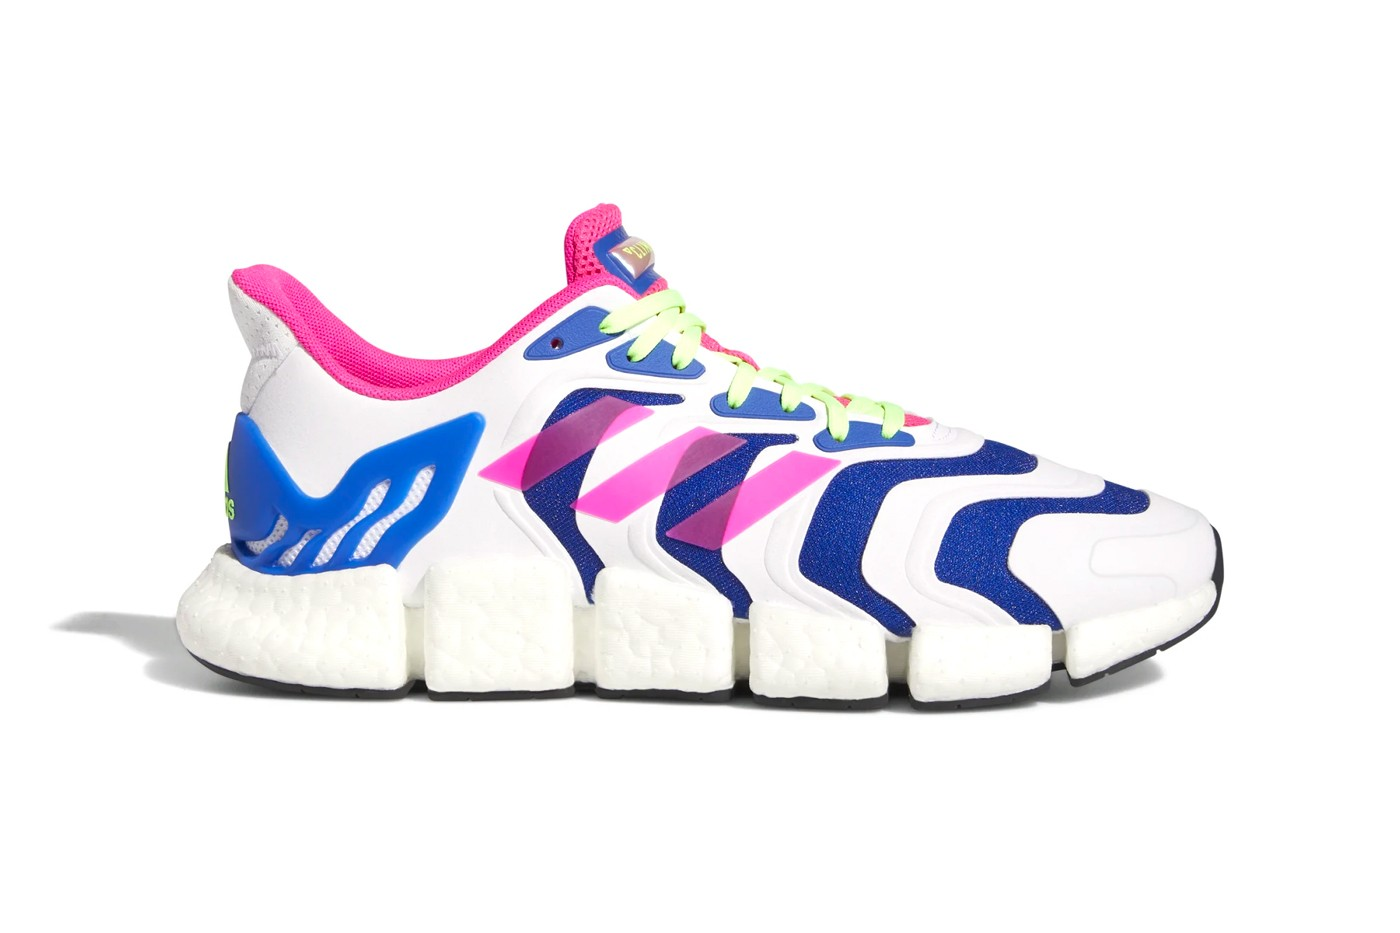 adidas Climacool VENTO - Super beautiful product for the brilliant summer to come